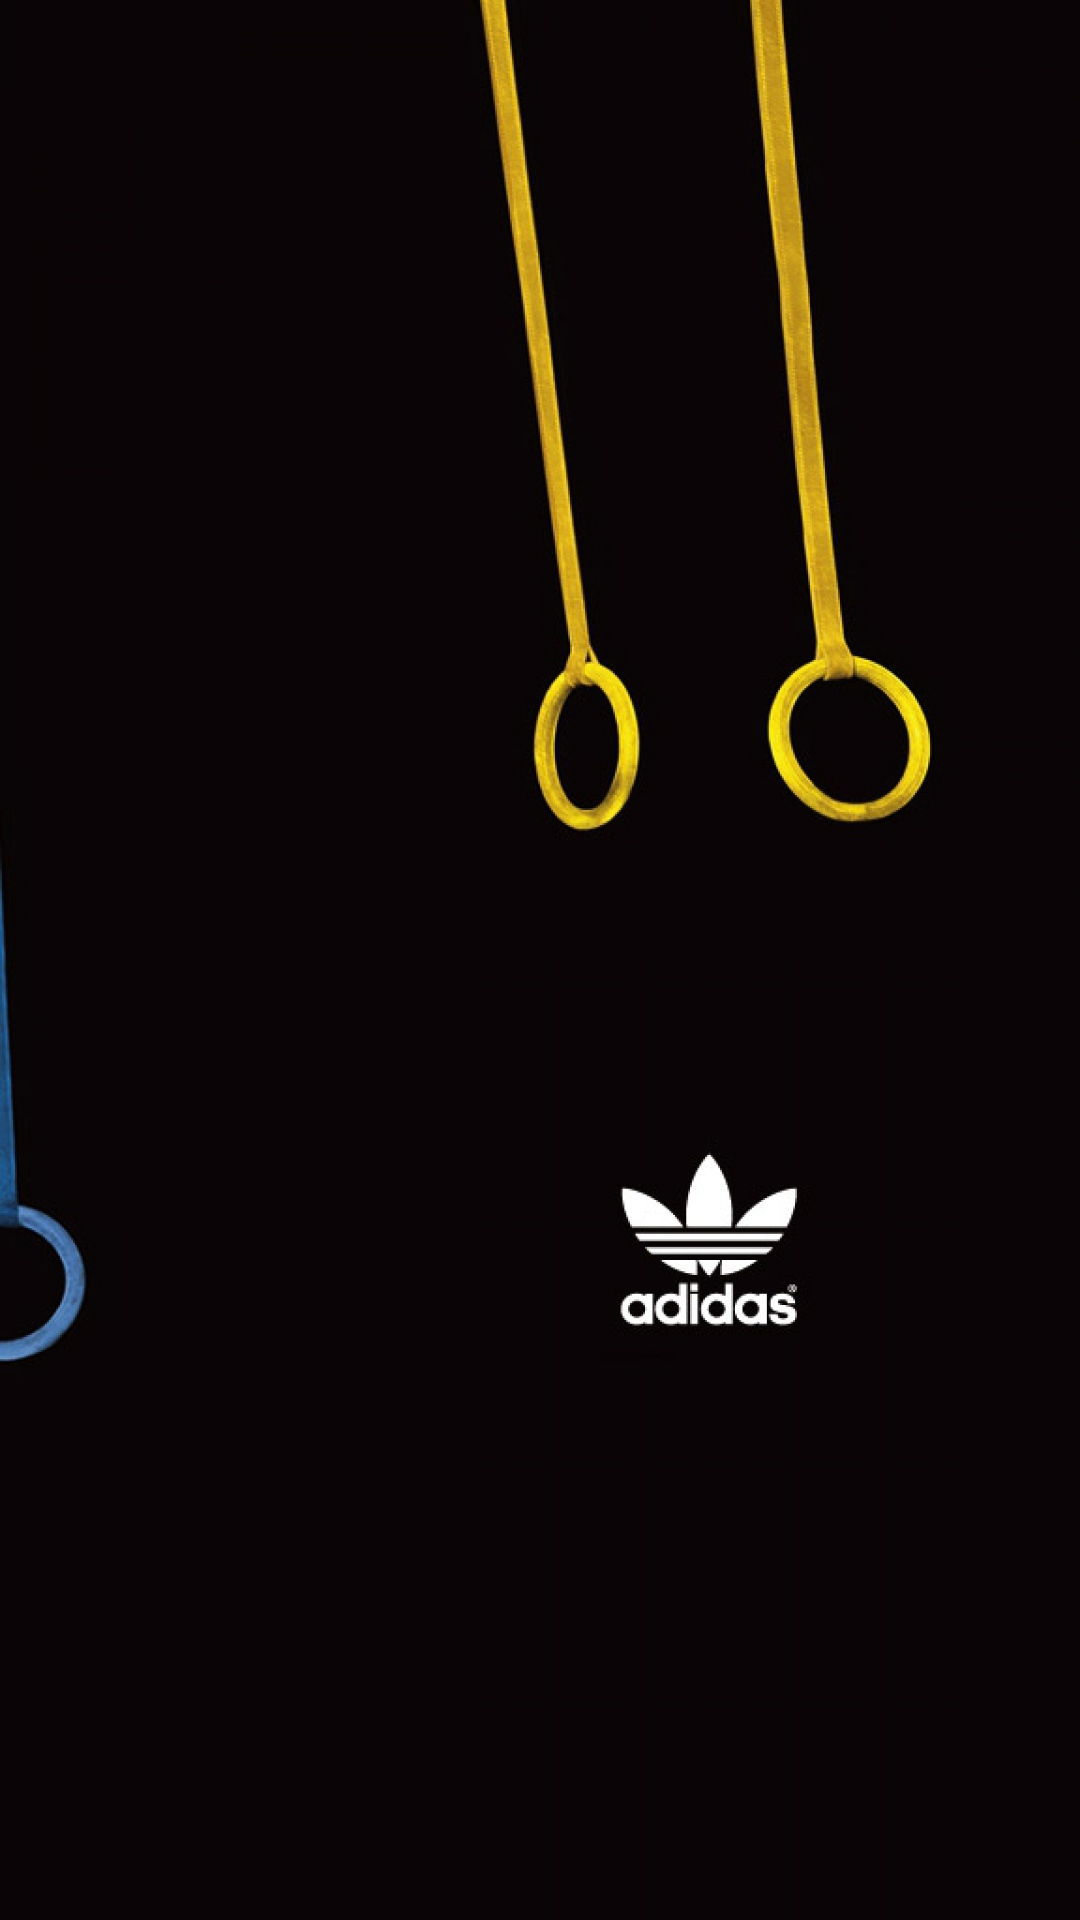 adidas originals wallpaper iphone